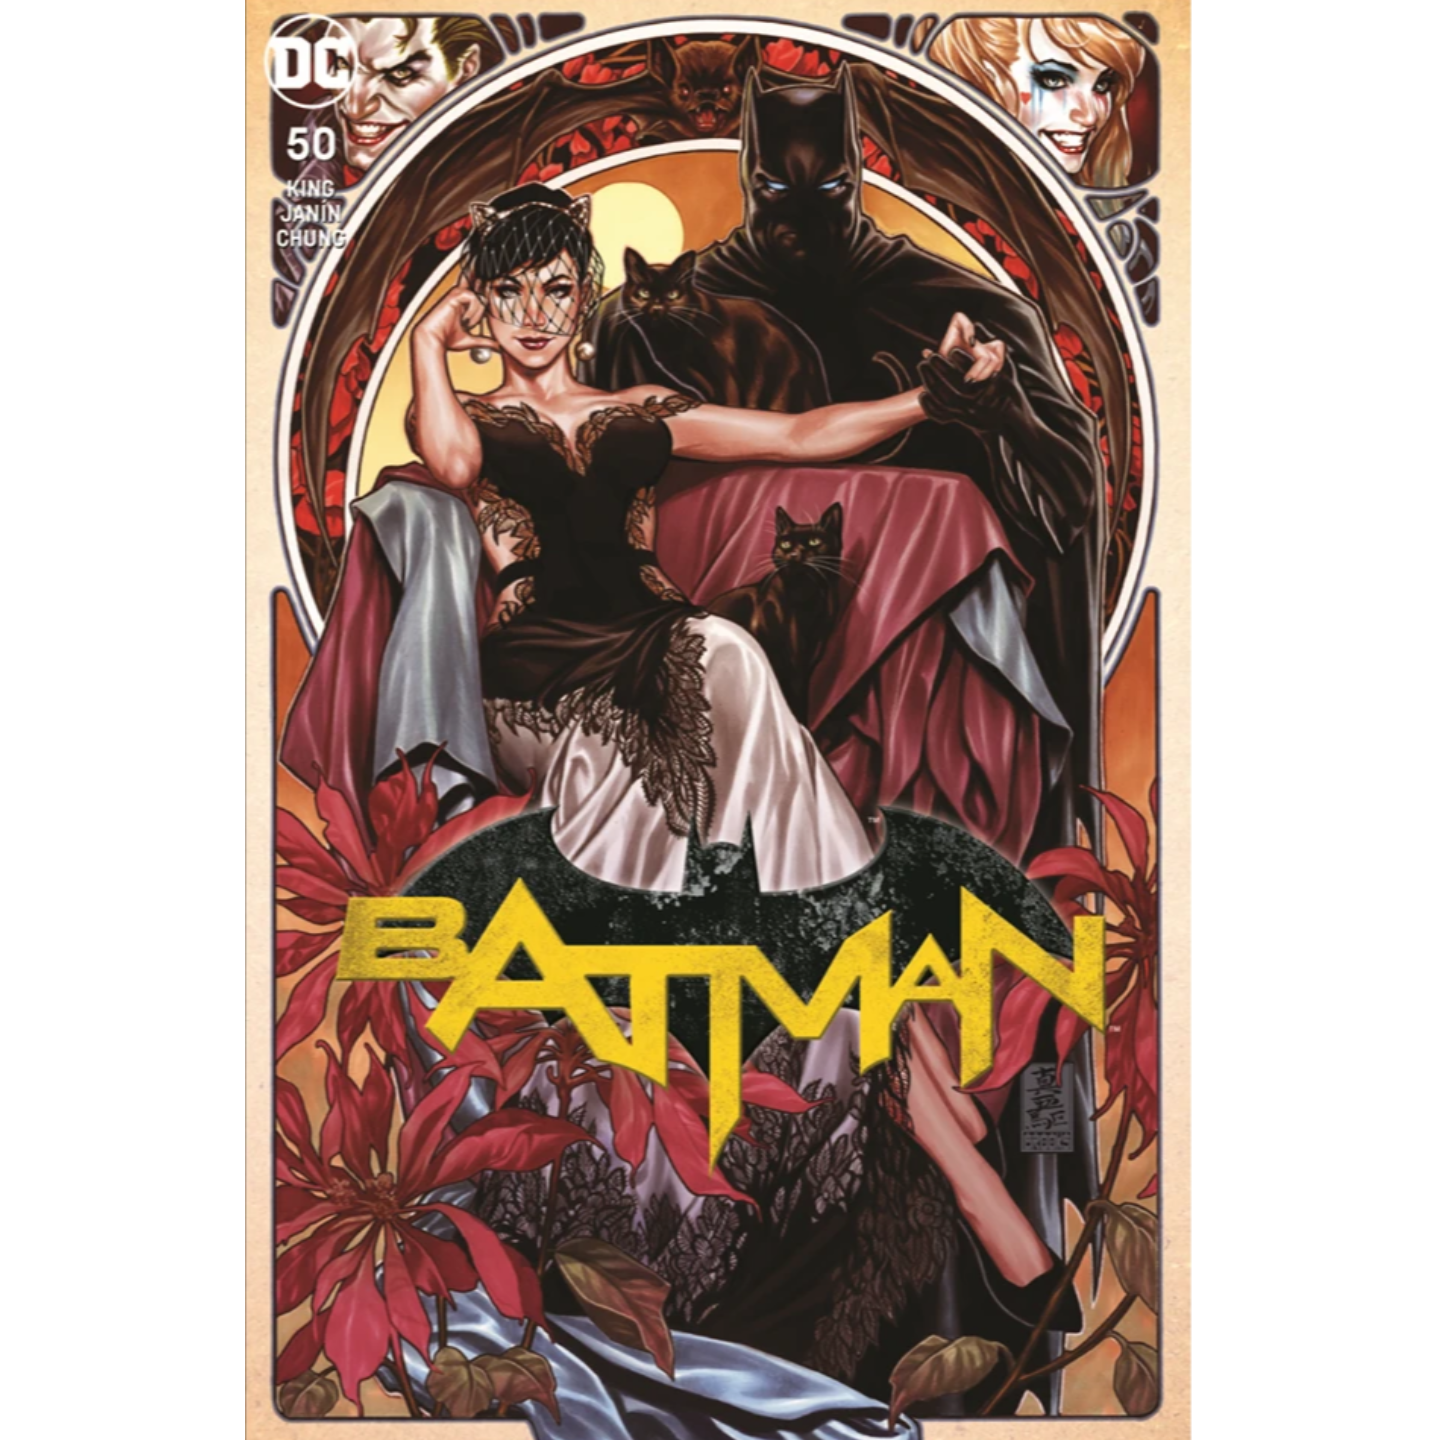 BATMAN #50 MARK BROOK EXCLUSIVE CVR